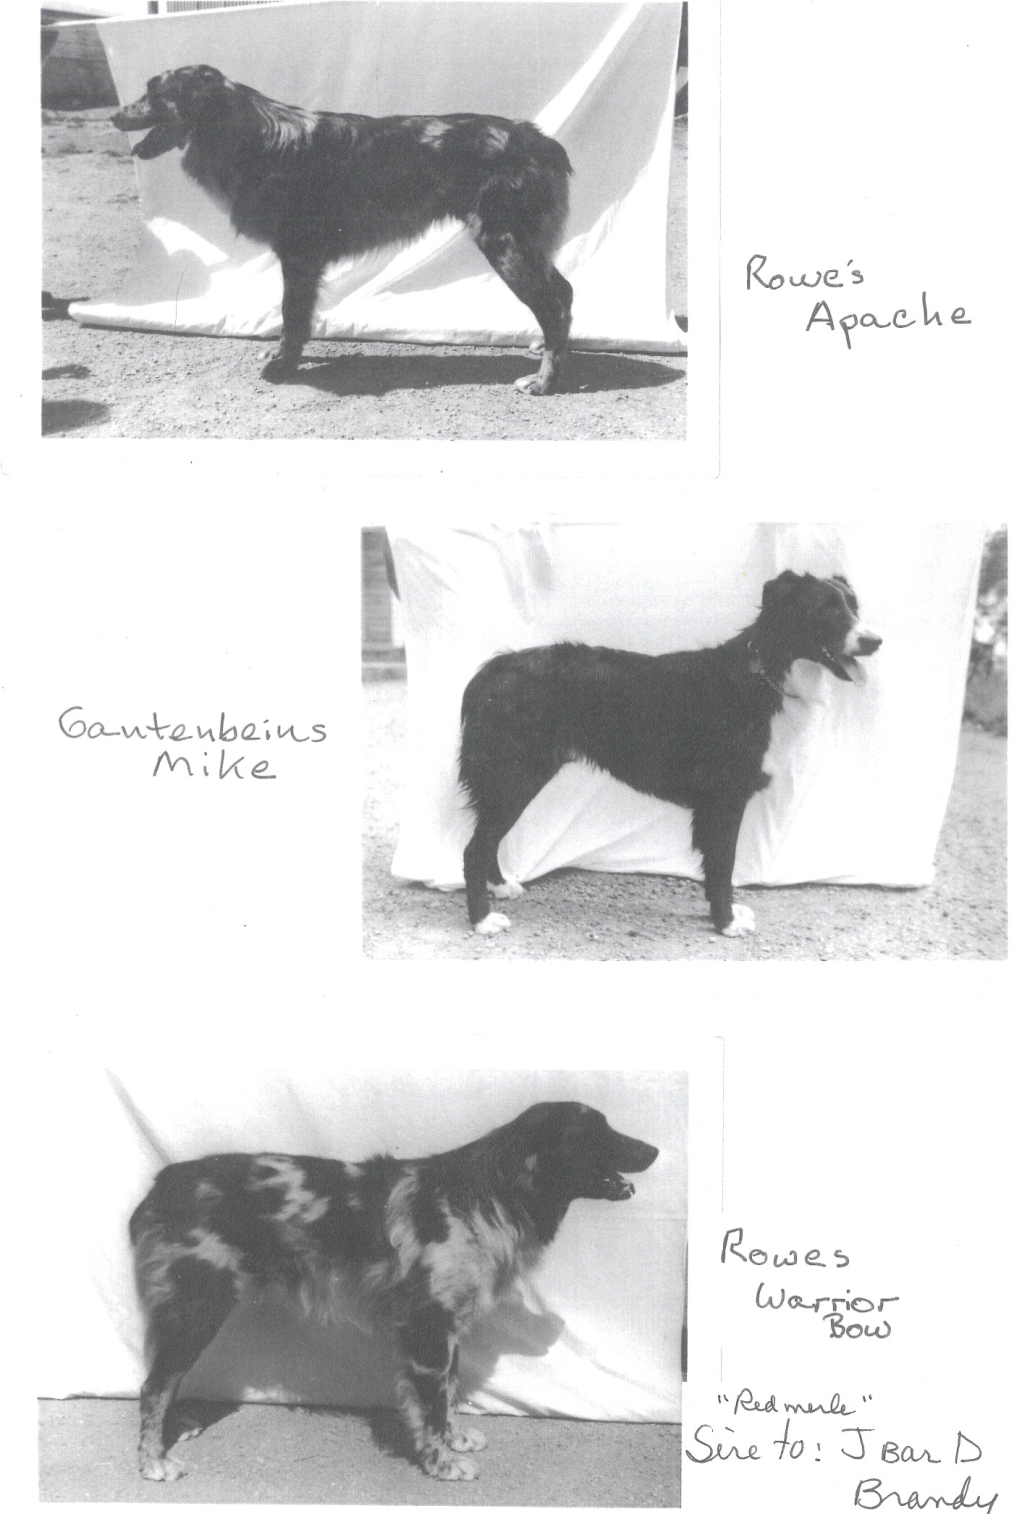 Rowes dogs